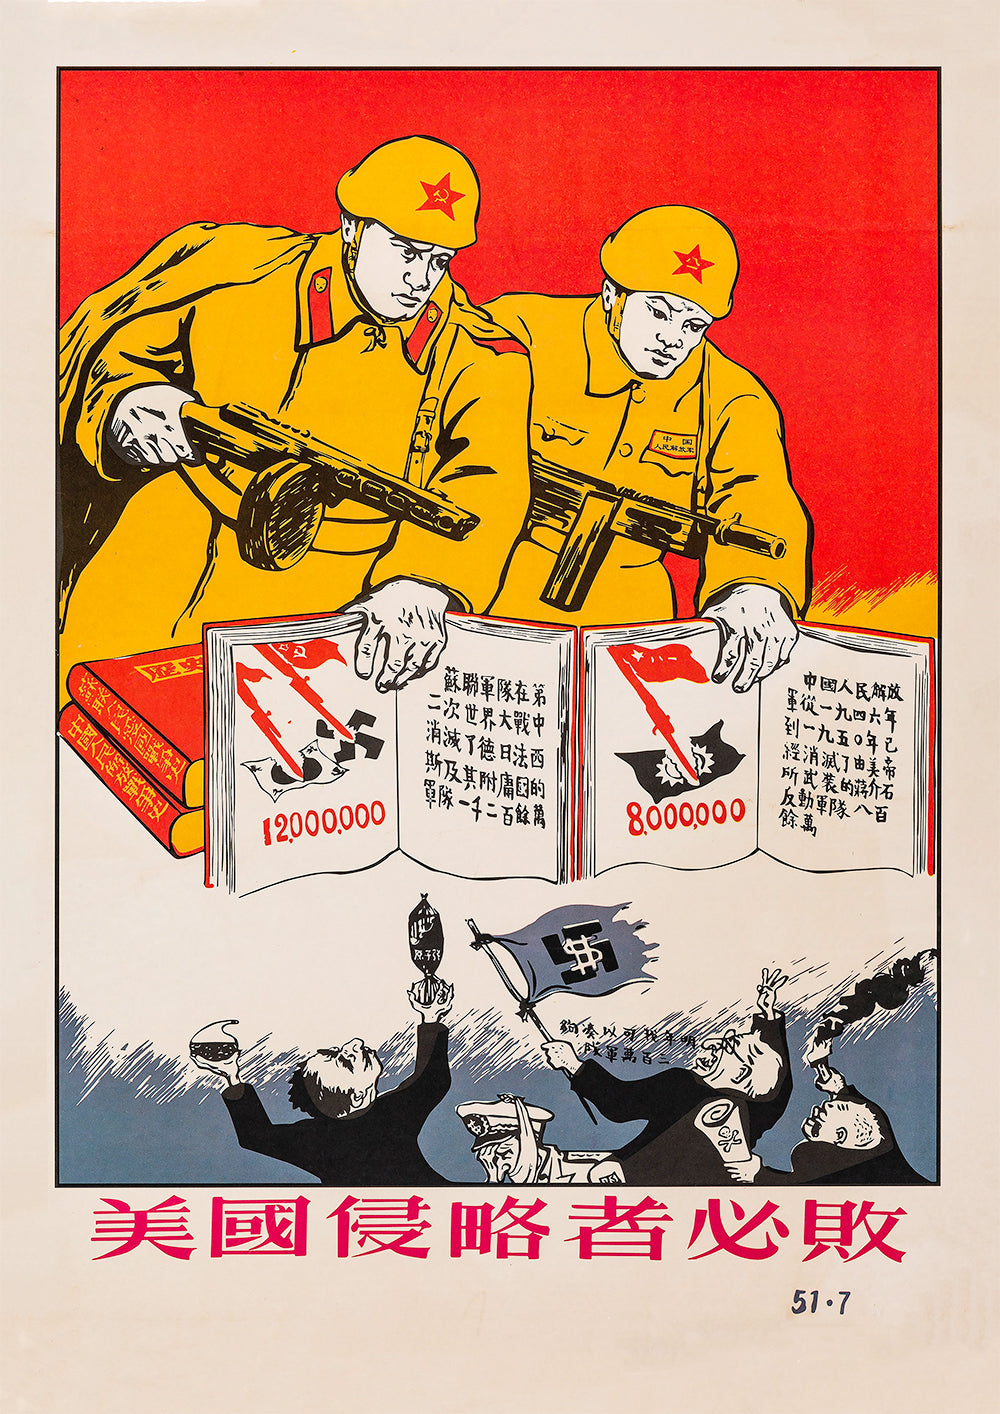 US invaders must be defeated – Chinese propaganda poster